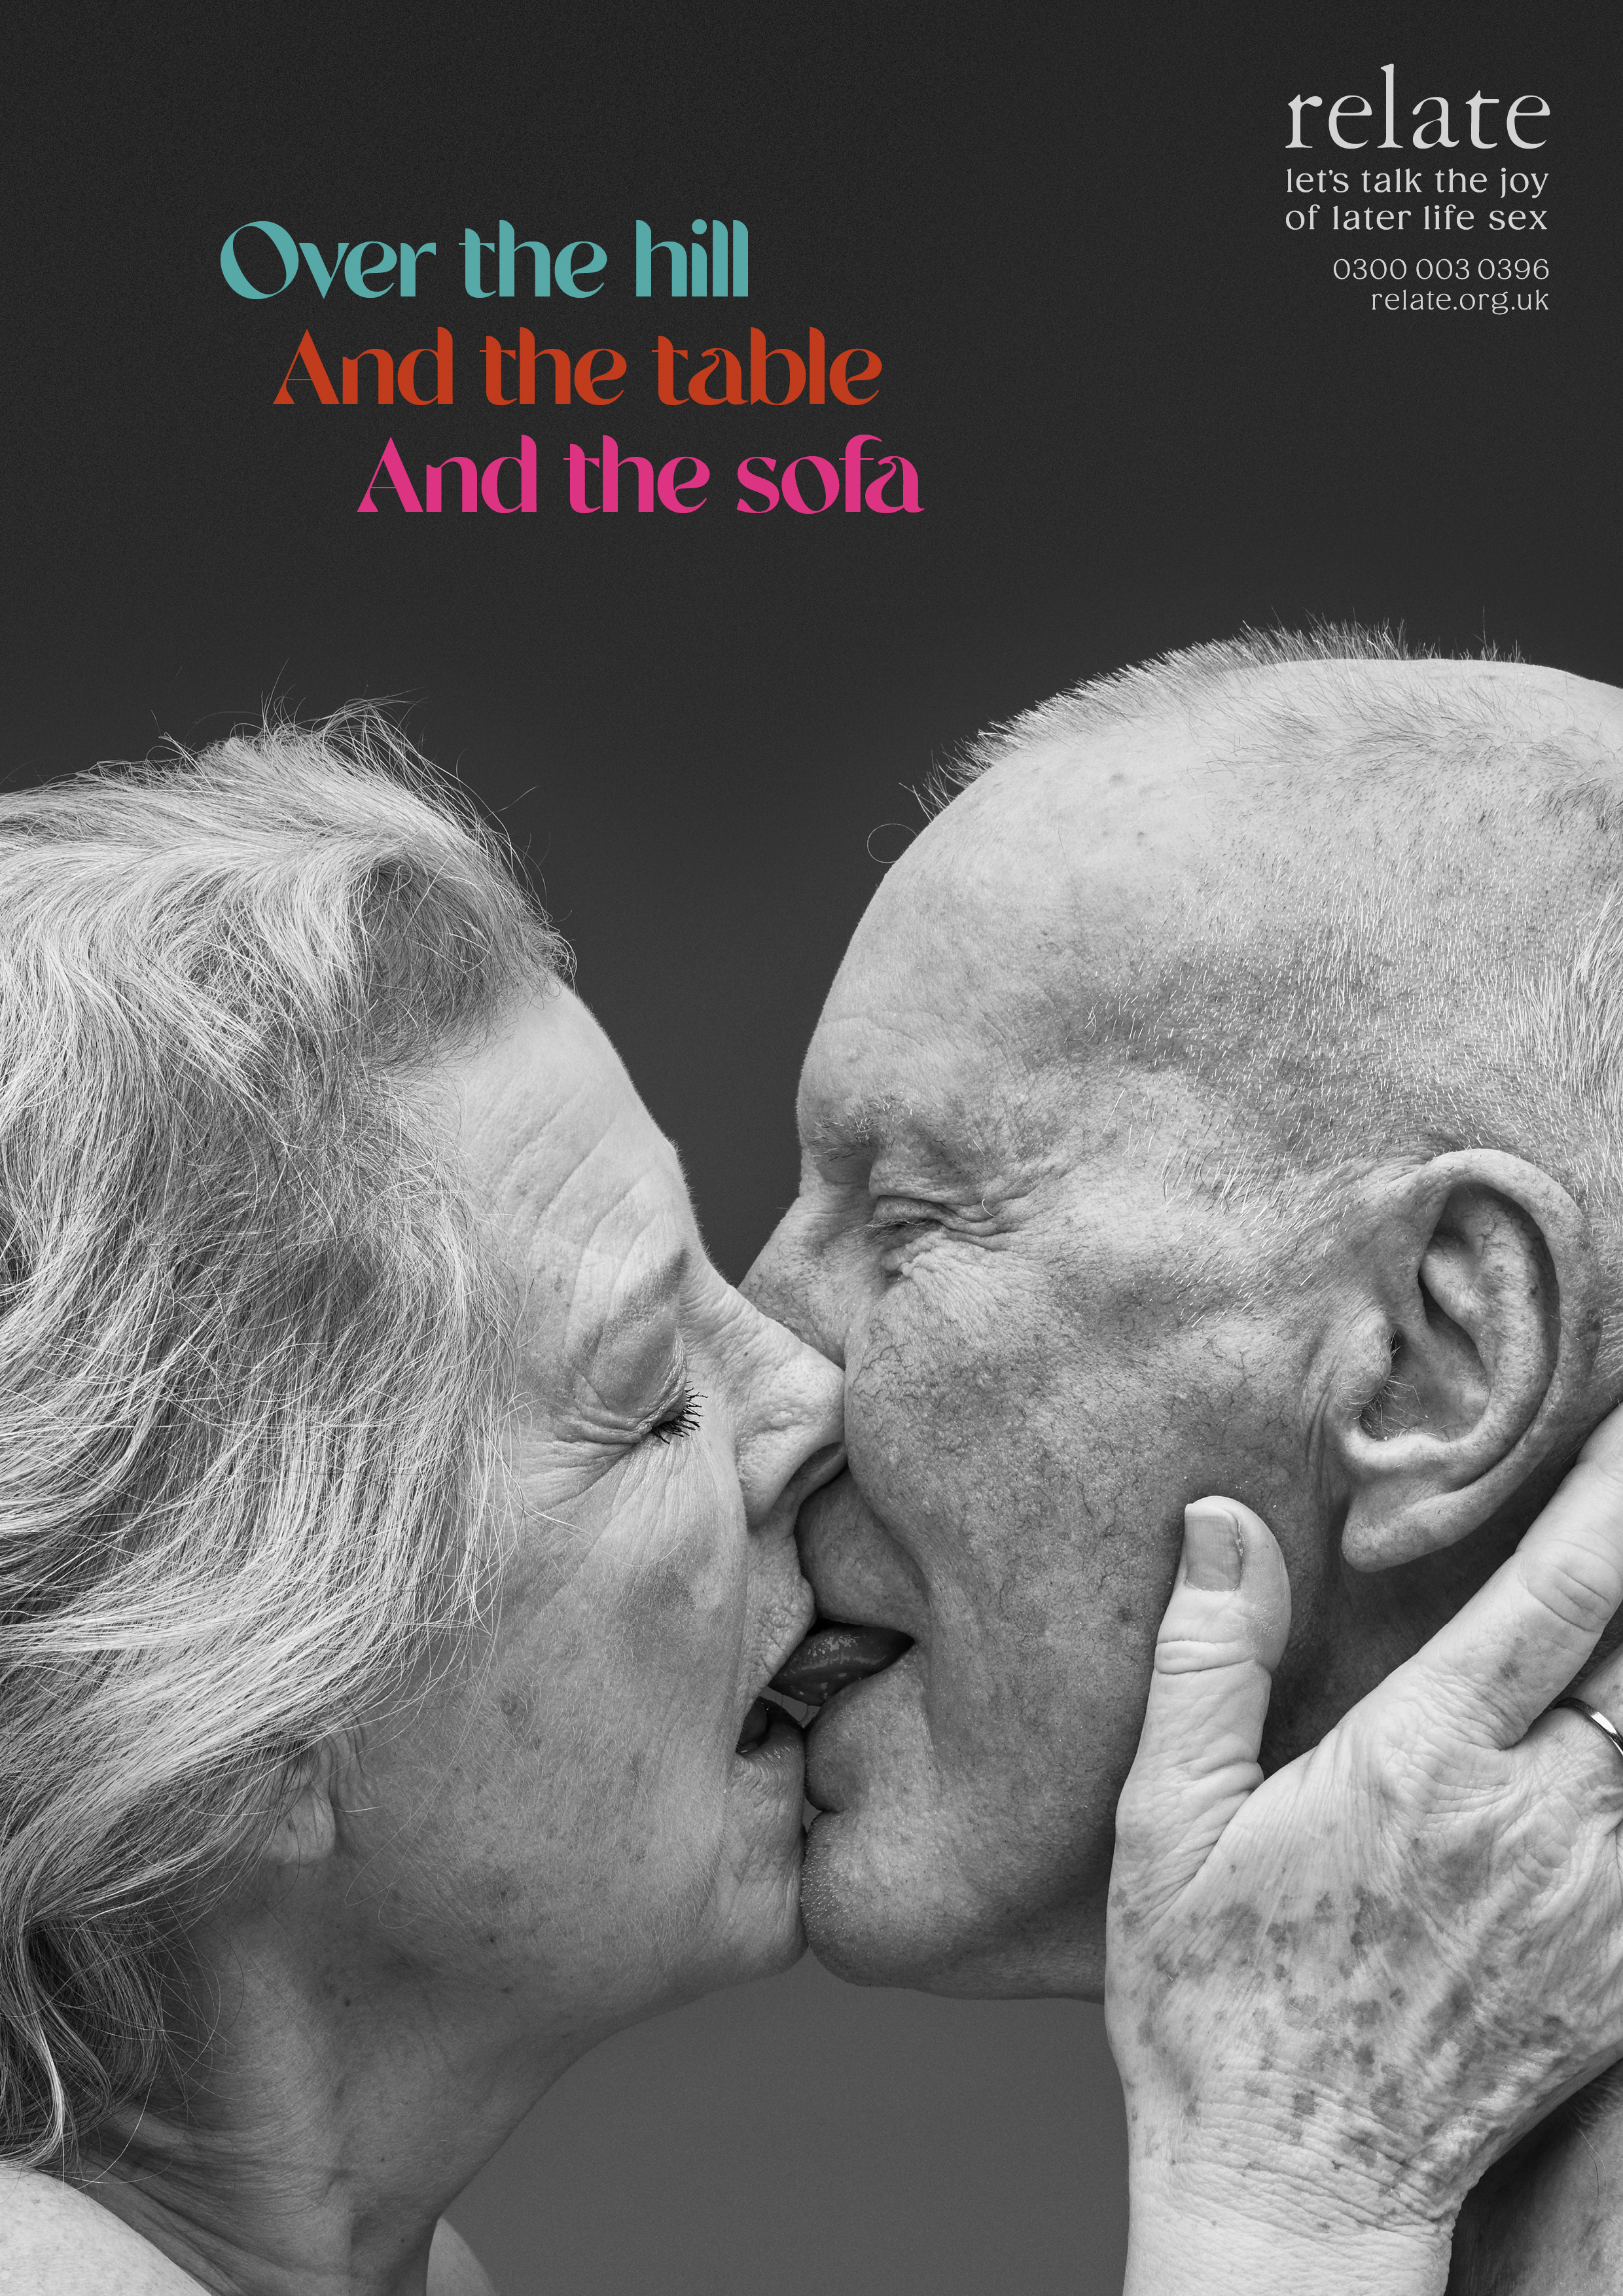 older man and woman kissing with caption 'Over the hill, and the table, and the sofa'